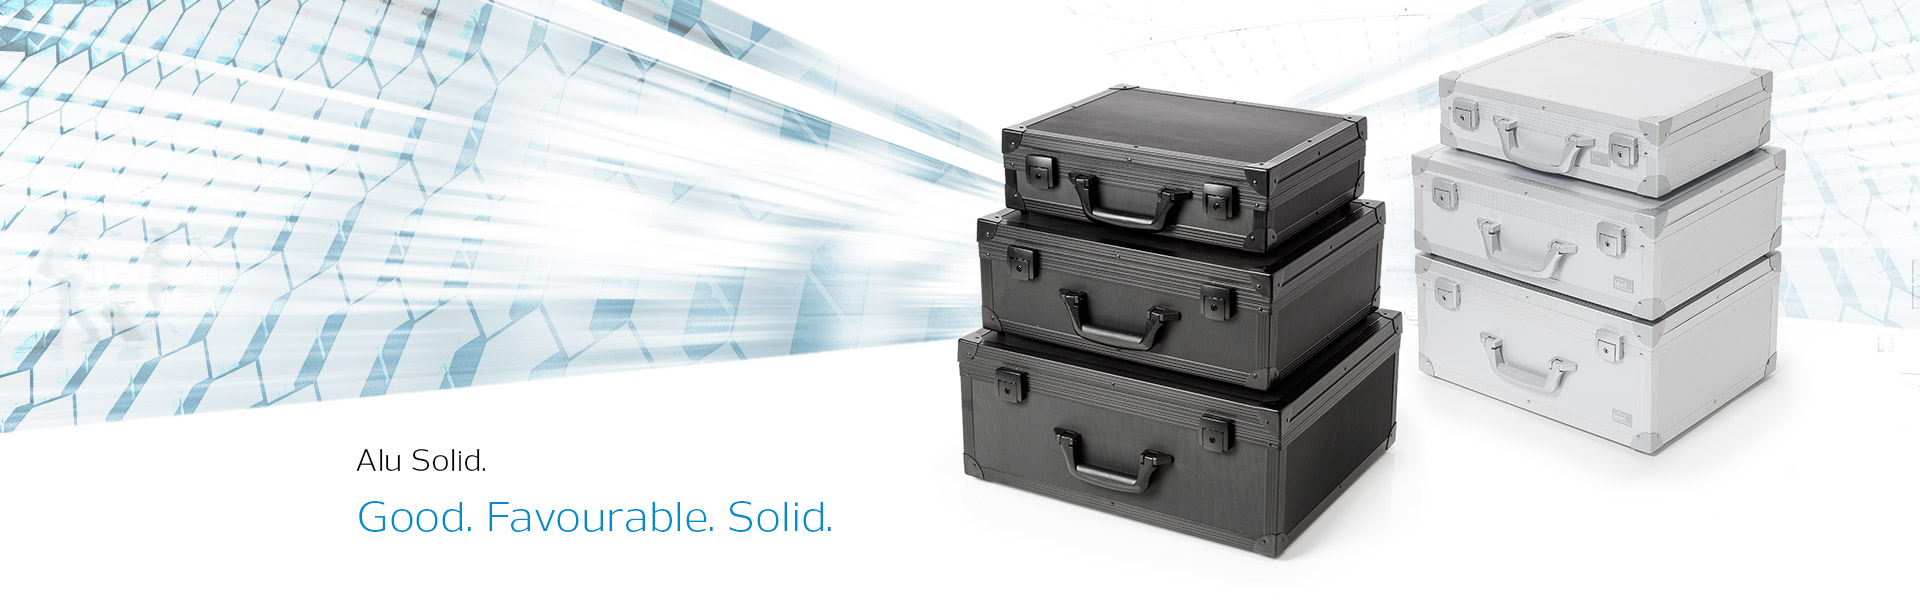 Aluminium cases from the Alu Solid case series